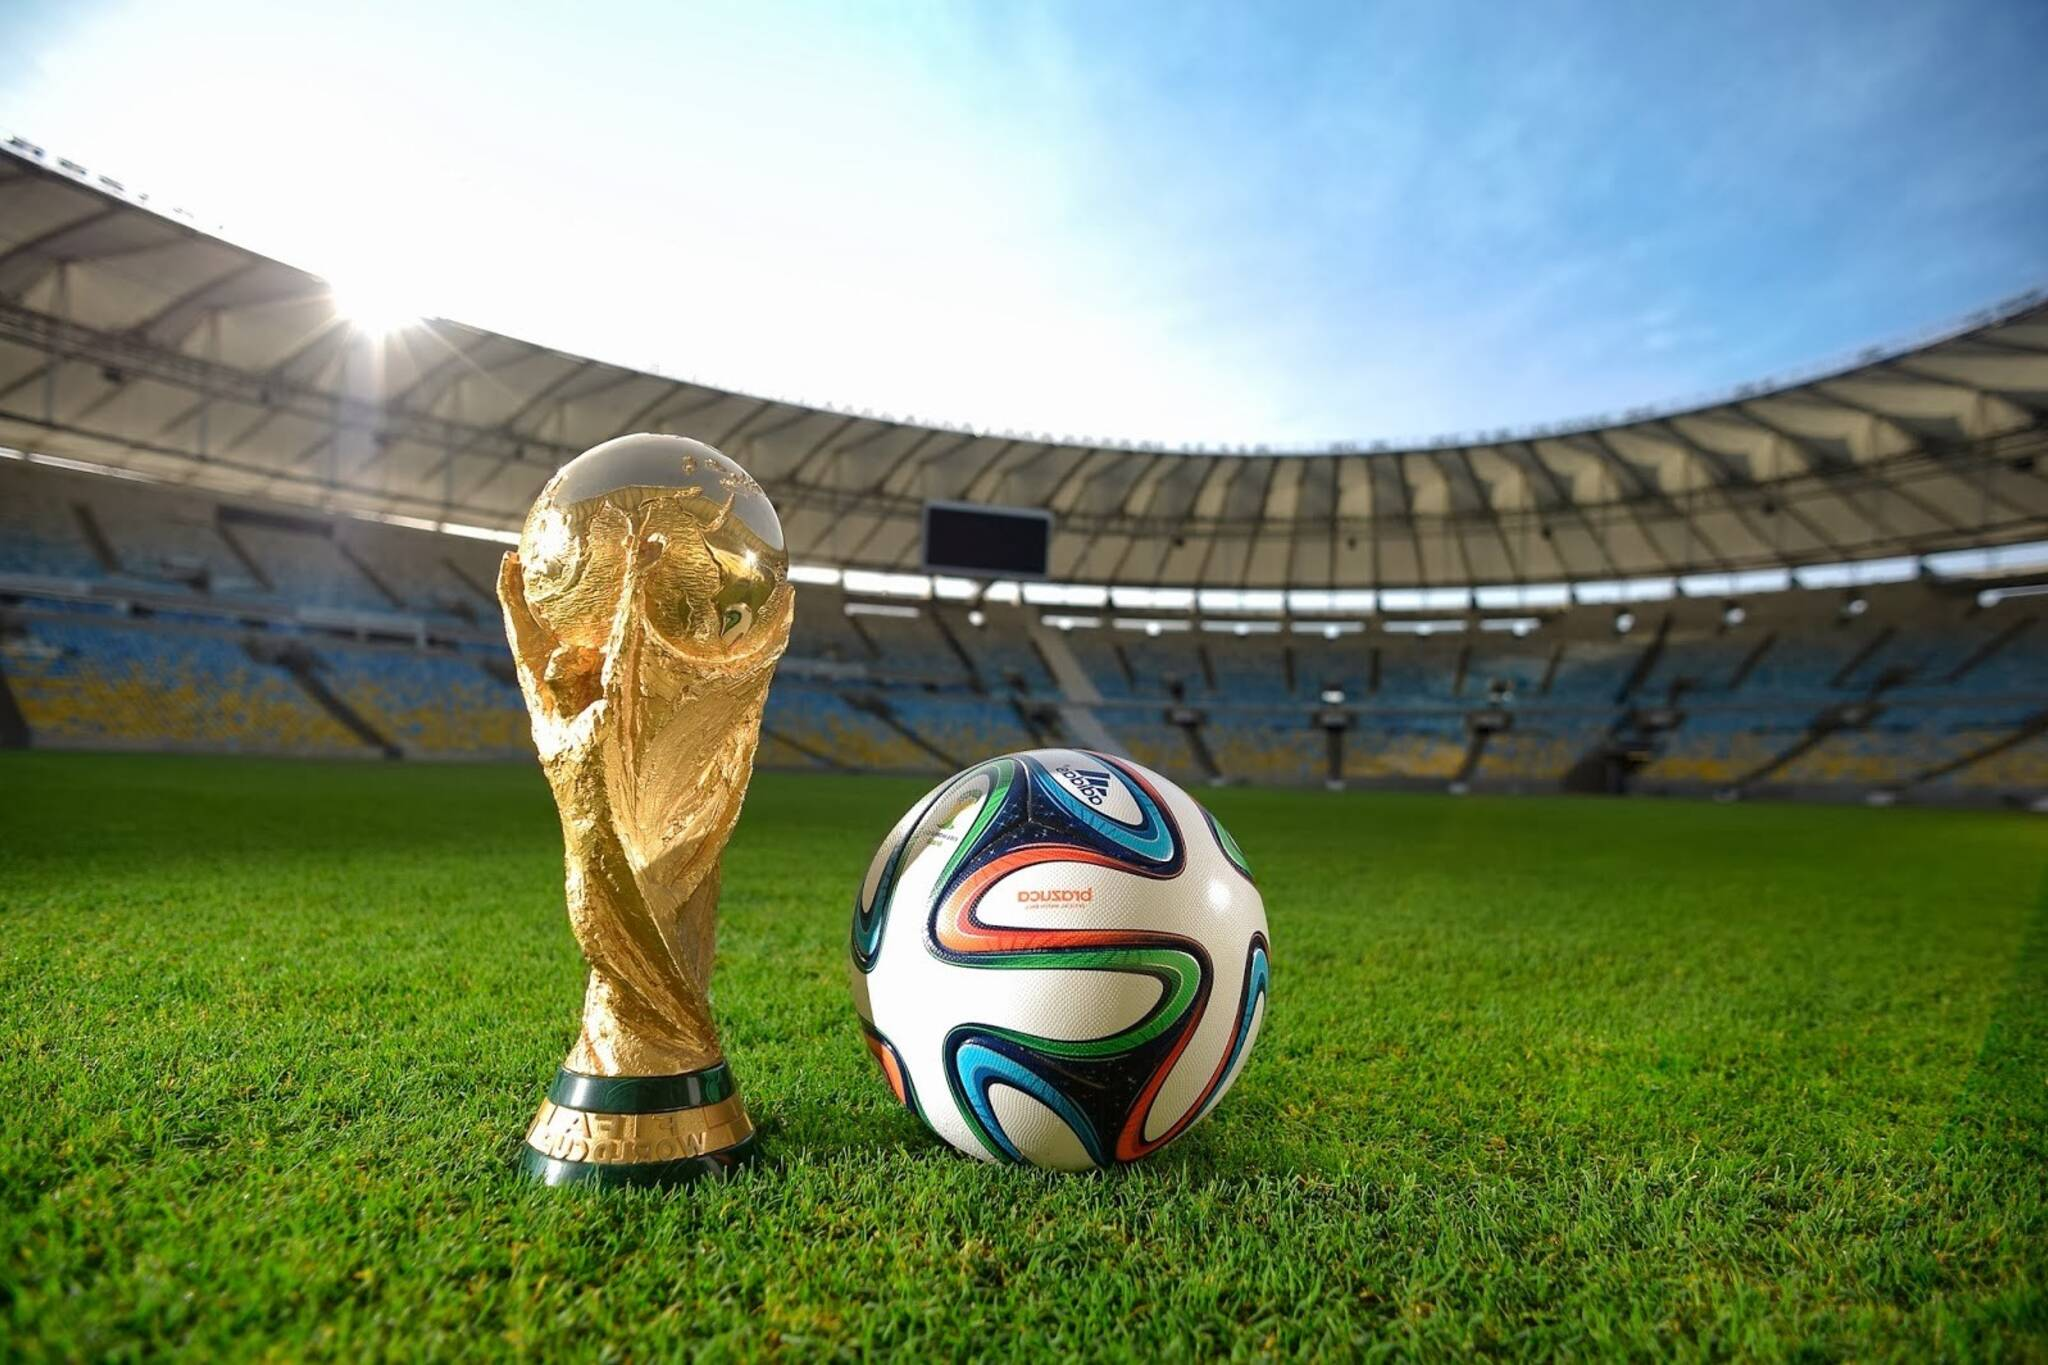 Toronto could play host to 2026 World Cup of Soccer